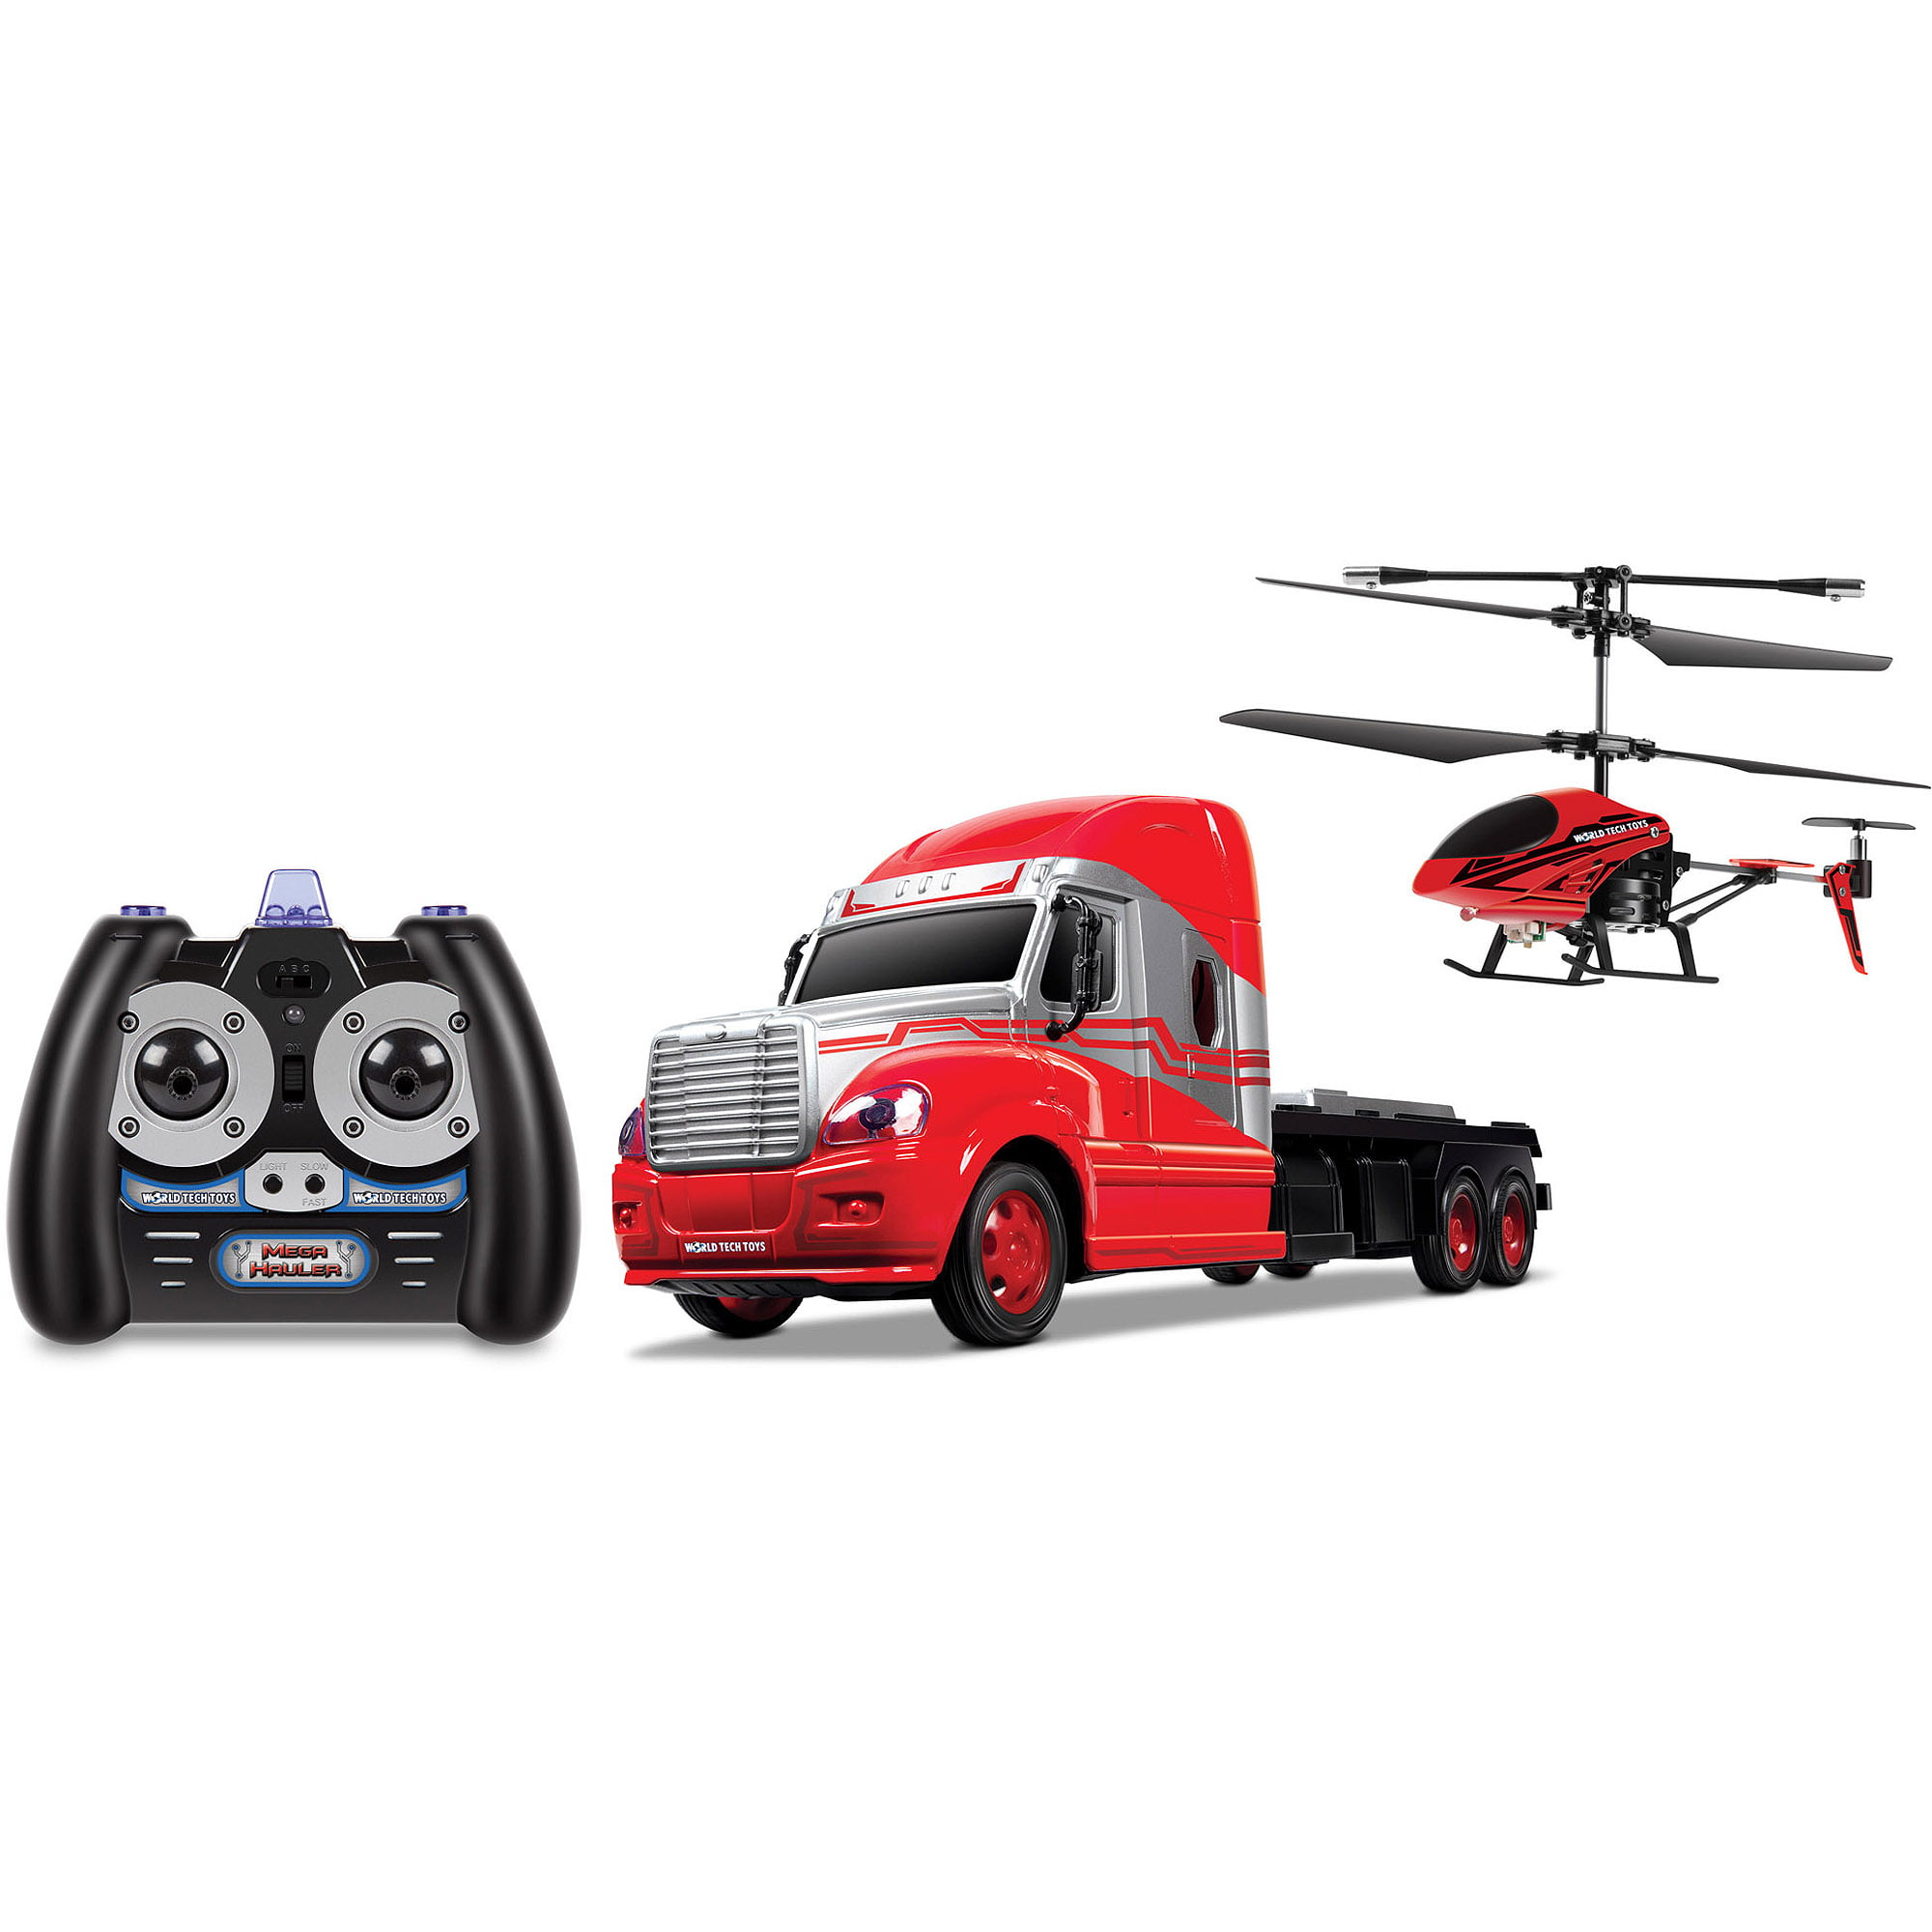 World Tech Toys 3.5CH Mega Hauler Helicopter & Truck Combo(Color may vary) by World Tech Toys